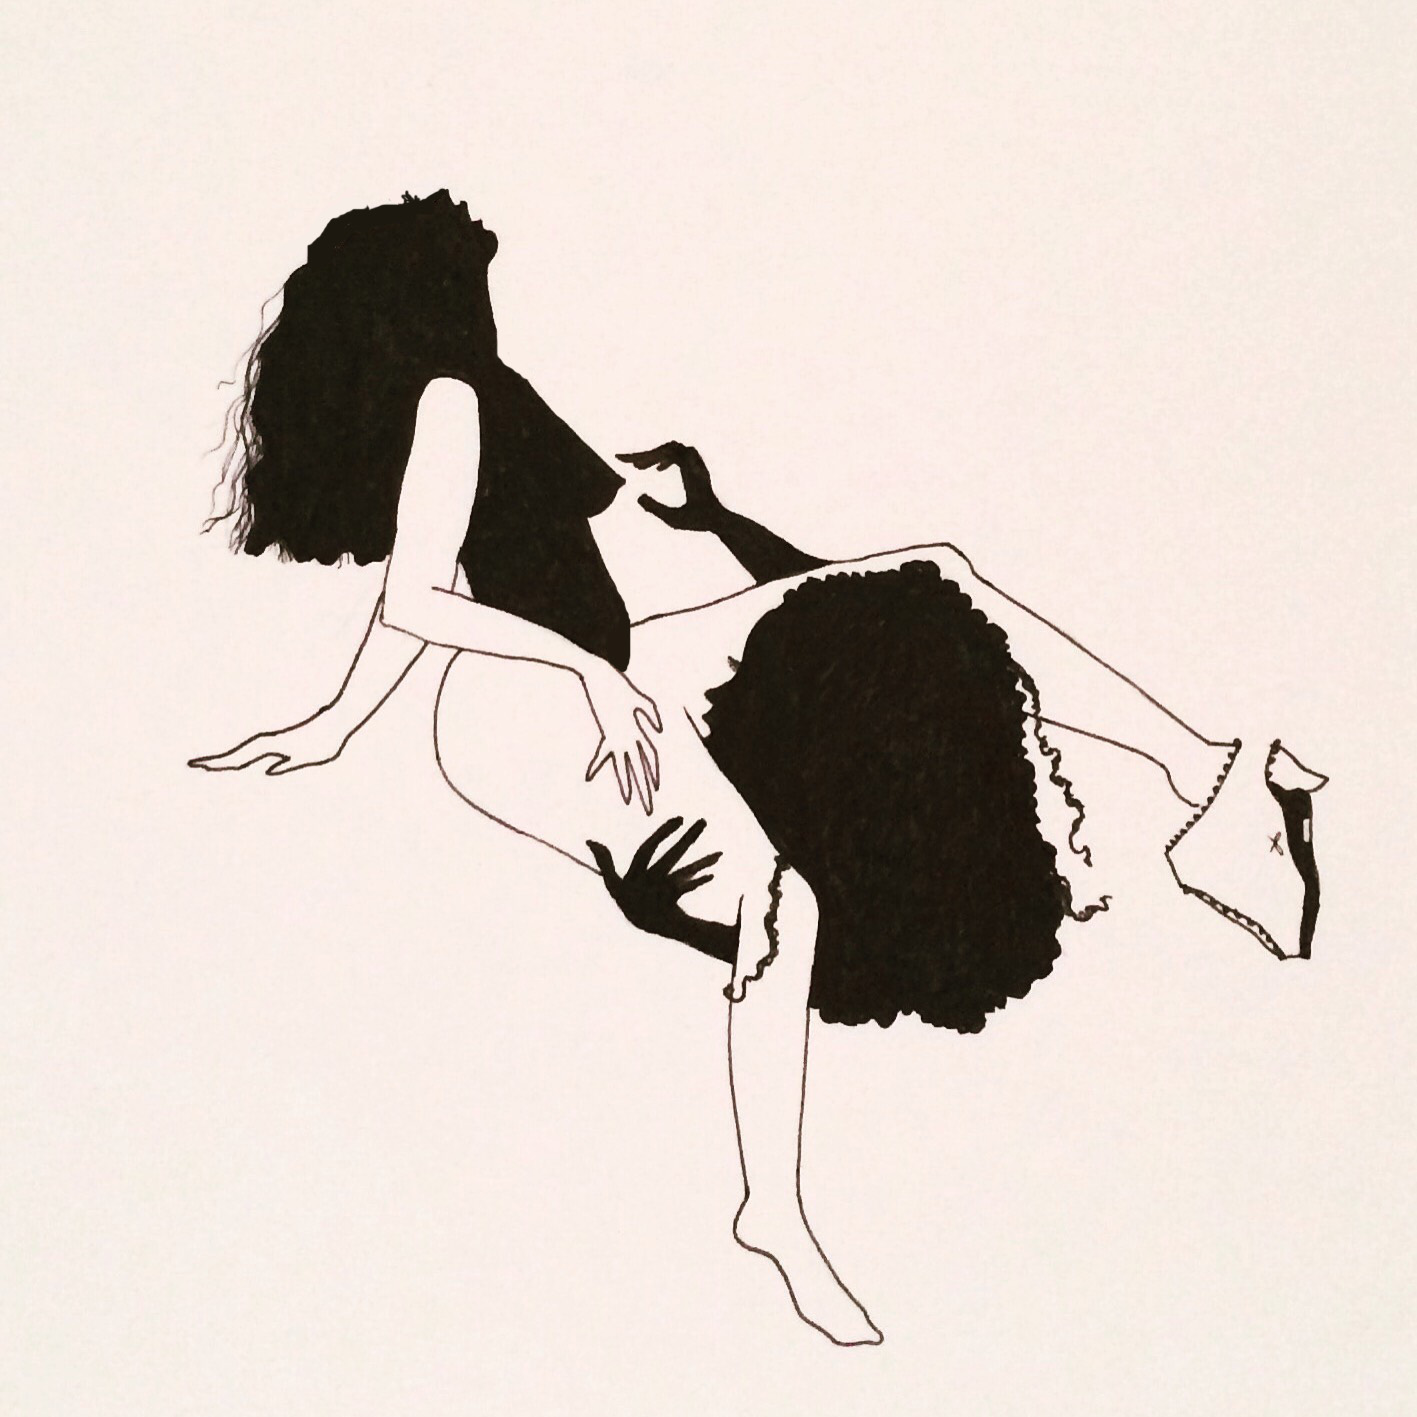 Hannah Kate Kelley - Lesbian Silhouette, pen and ink, 2016